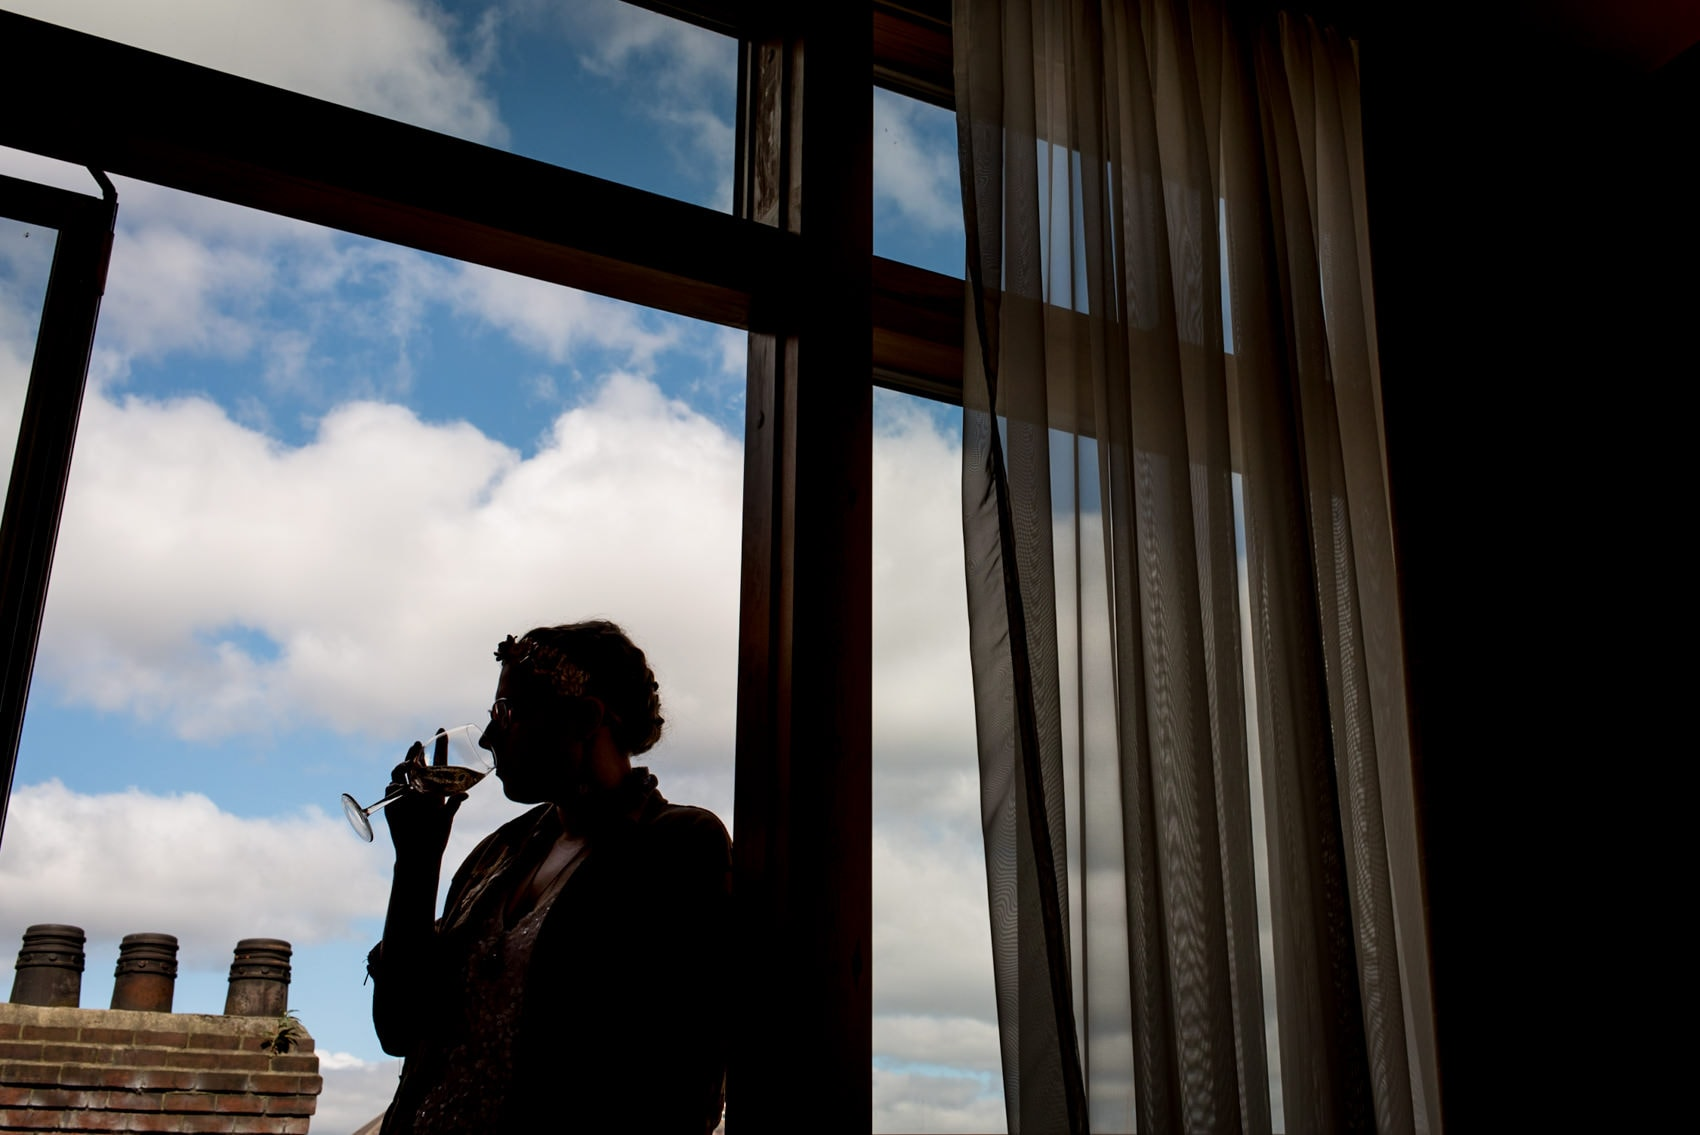 silhouette of a bride with a glass of wine while she gets ready for her wedding